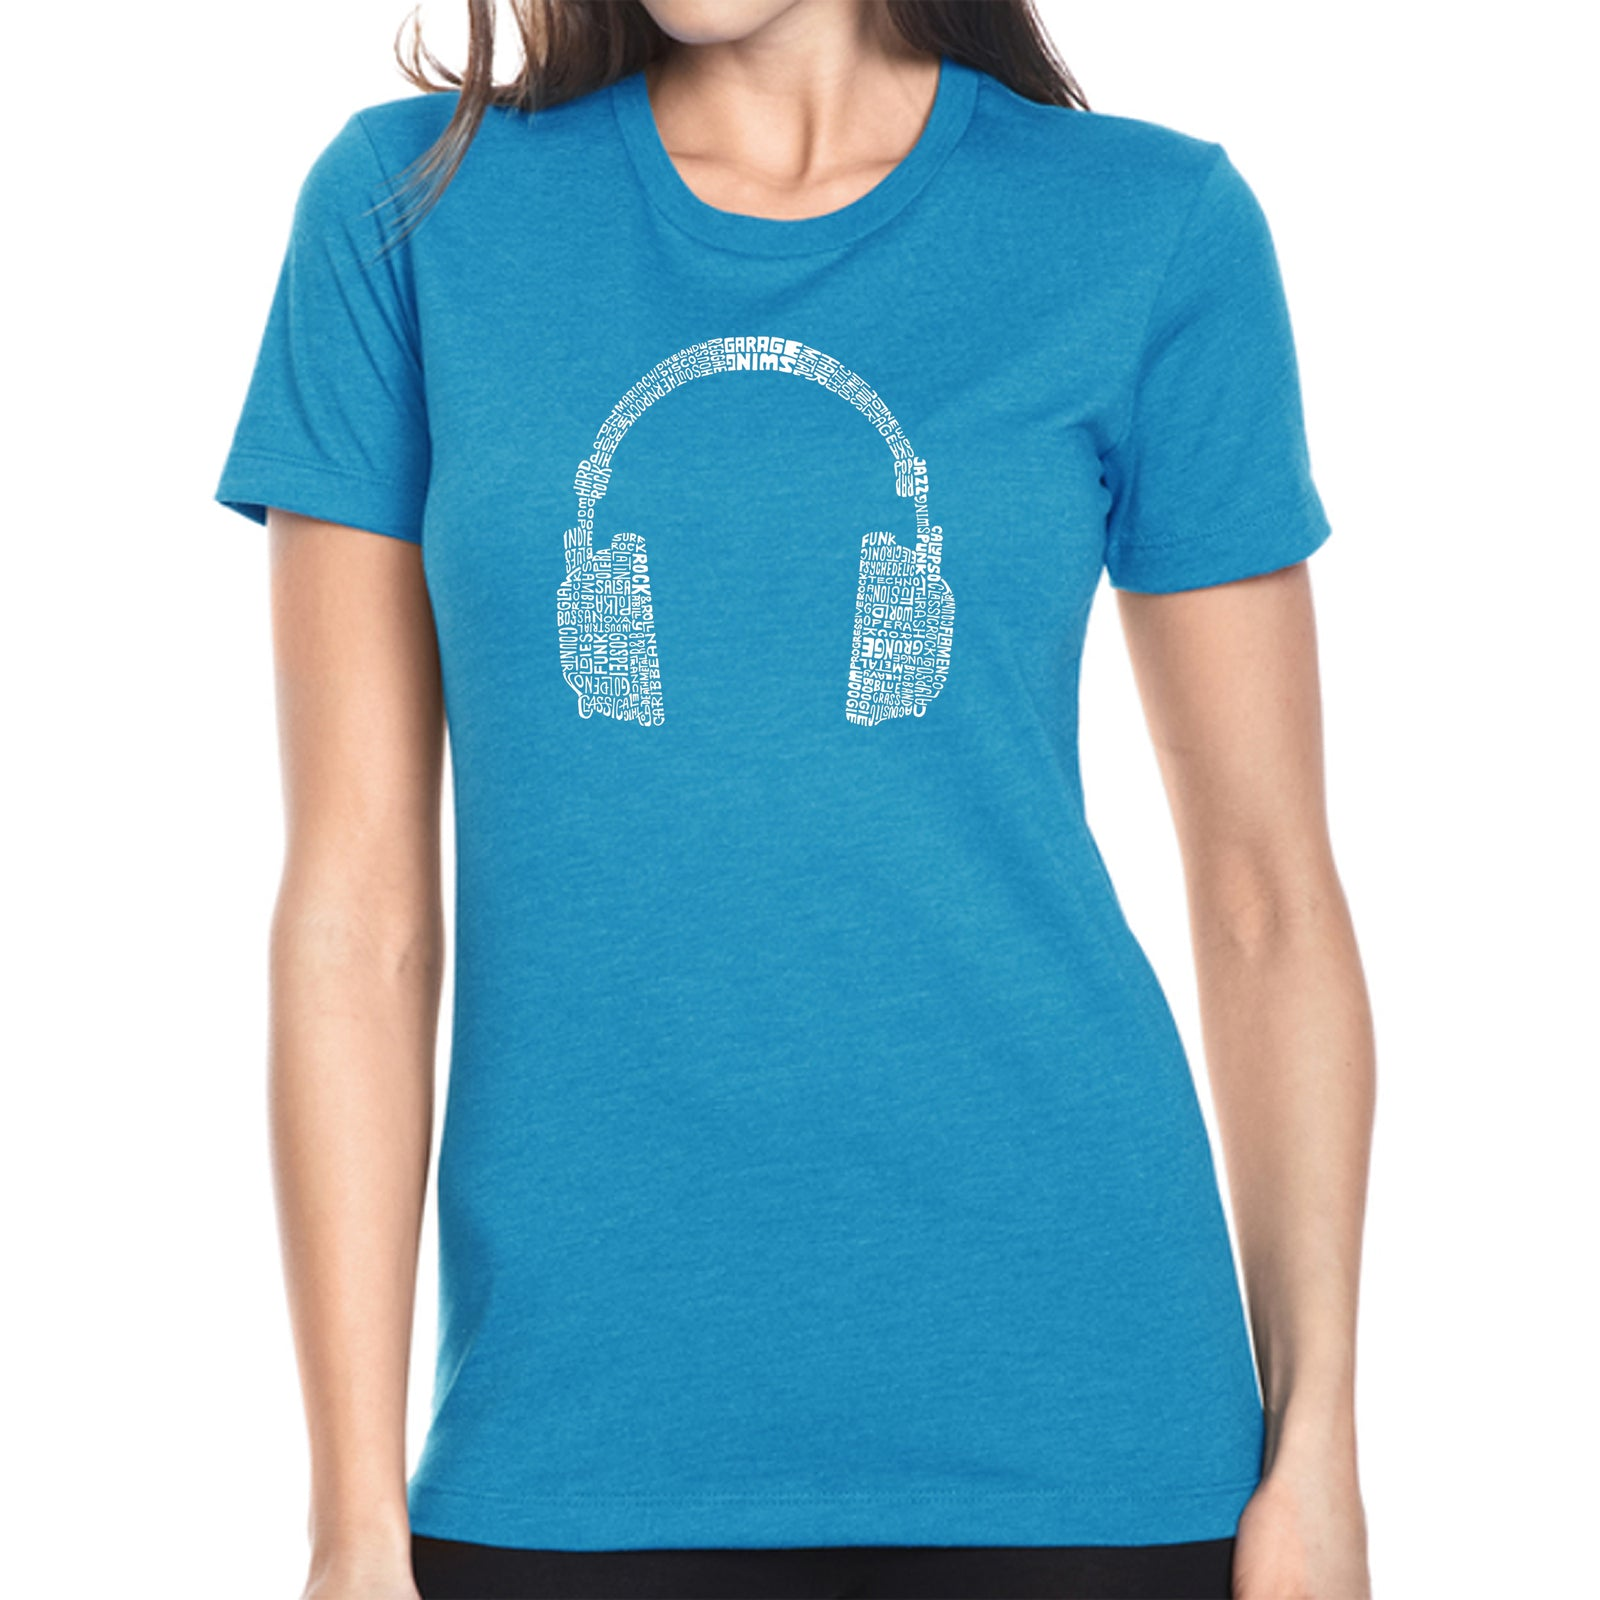 Women's Premium Blend Word Art T-shirt - 63 DIFFERENT GENRES OF MUSIC